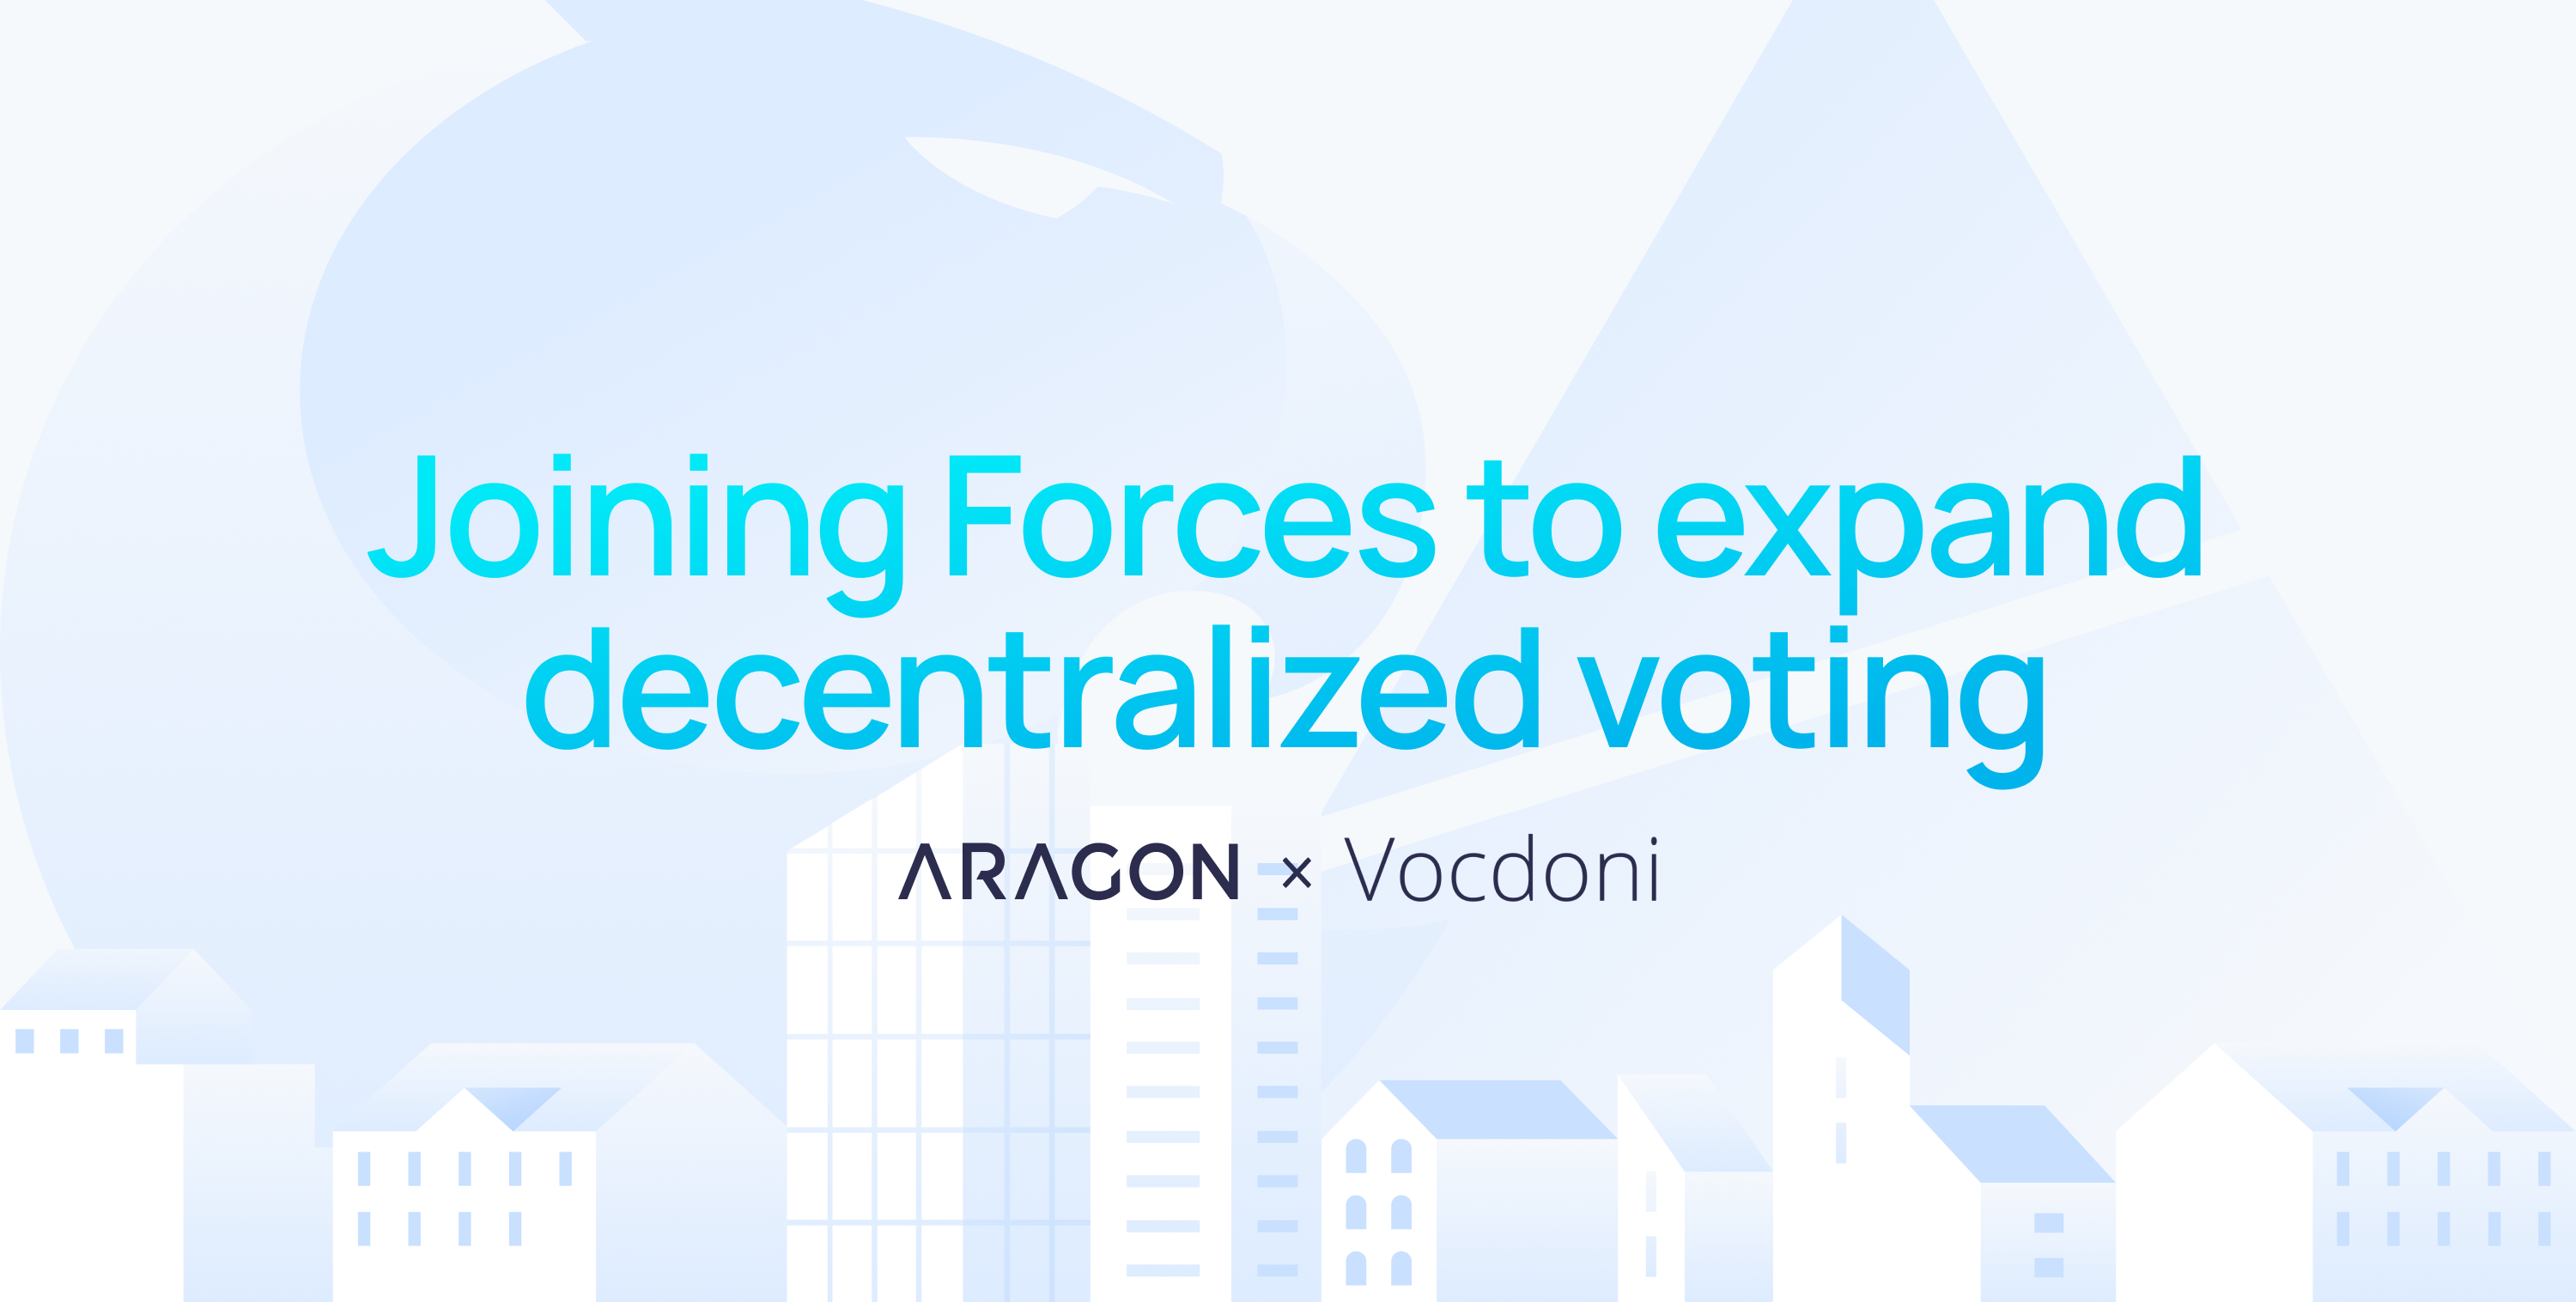 Aragon Association and Vocdoni join forces to expand decentralized voting